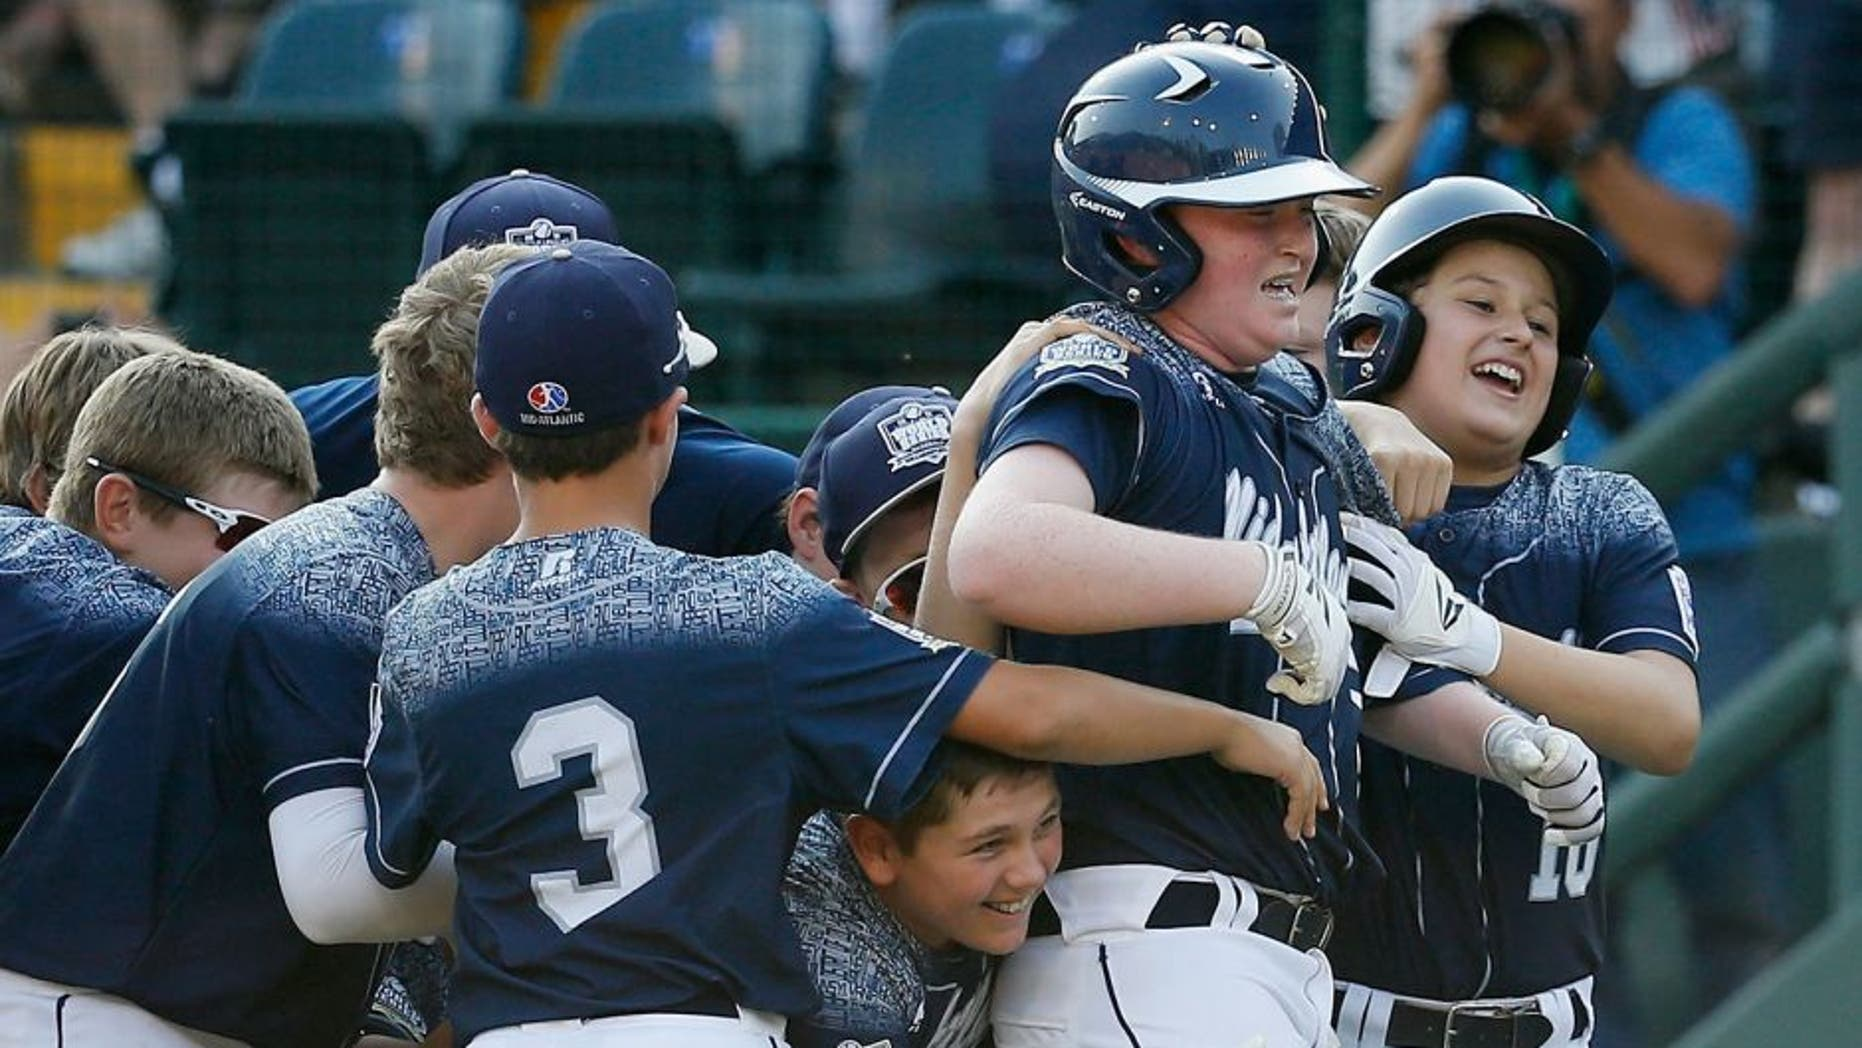 SOUTH WILLAMSPORT, PA - AUGUST 29: Clayton Krauss #25 of the Mid-Atlantic team from Red Land Little League of Lewisberry, Pennsylvania (C) celebrates with teammates after hitting a walk off single against the Southwest team from Pearland West Little League of Pearland, Texas for a 3-2 win during the United States Championship game of the Little League World Series at Lamade Stadium on August 29, 2015 in South Willamsport, Pennsylvania. (Photo by Rob Carr/Getty Images)